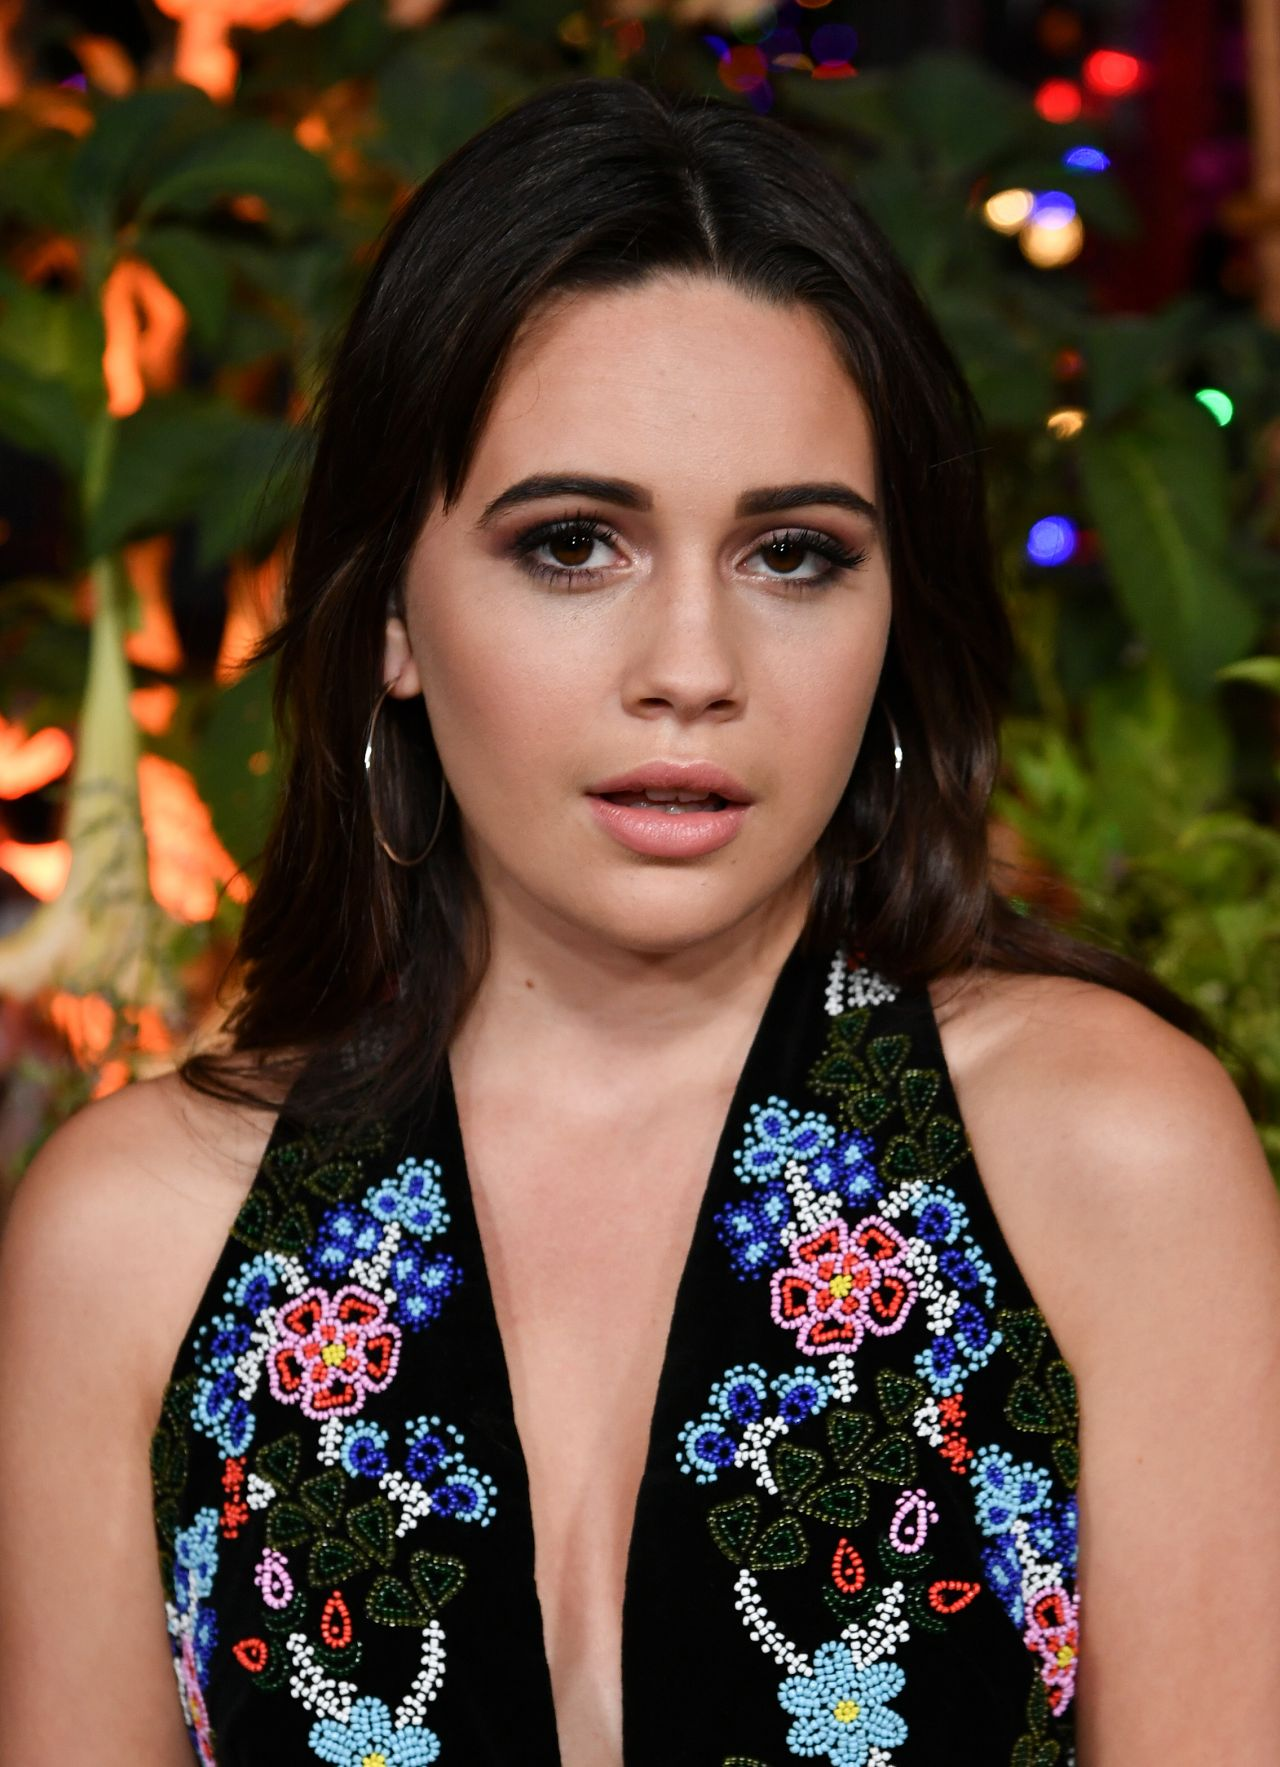 Topless Celebrity Bea Miller naked photo 2017